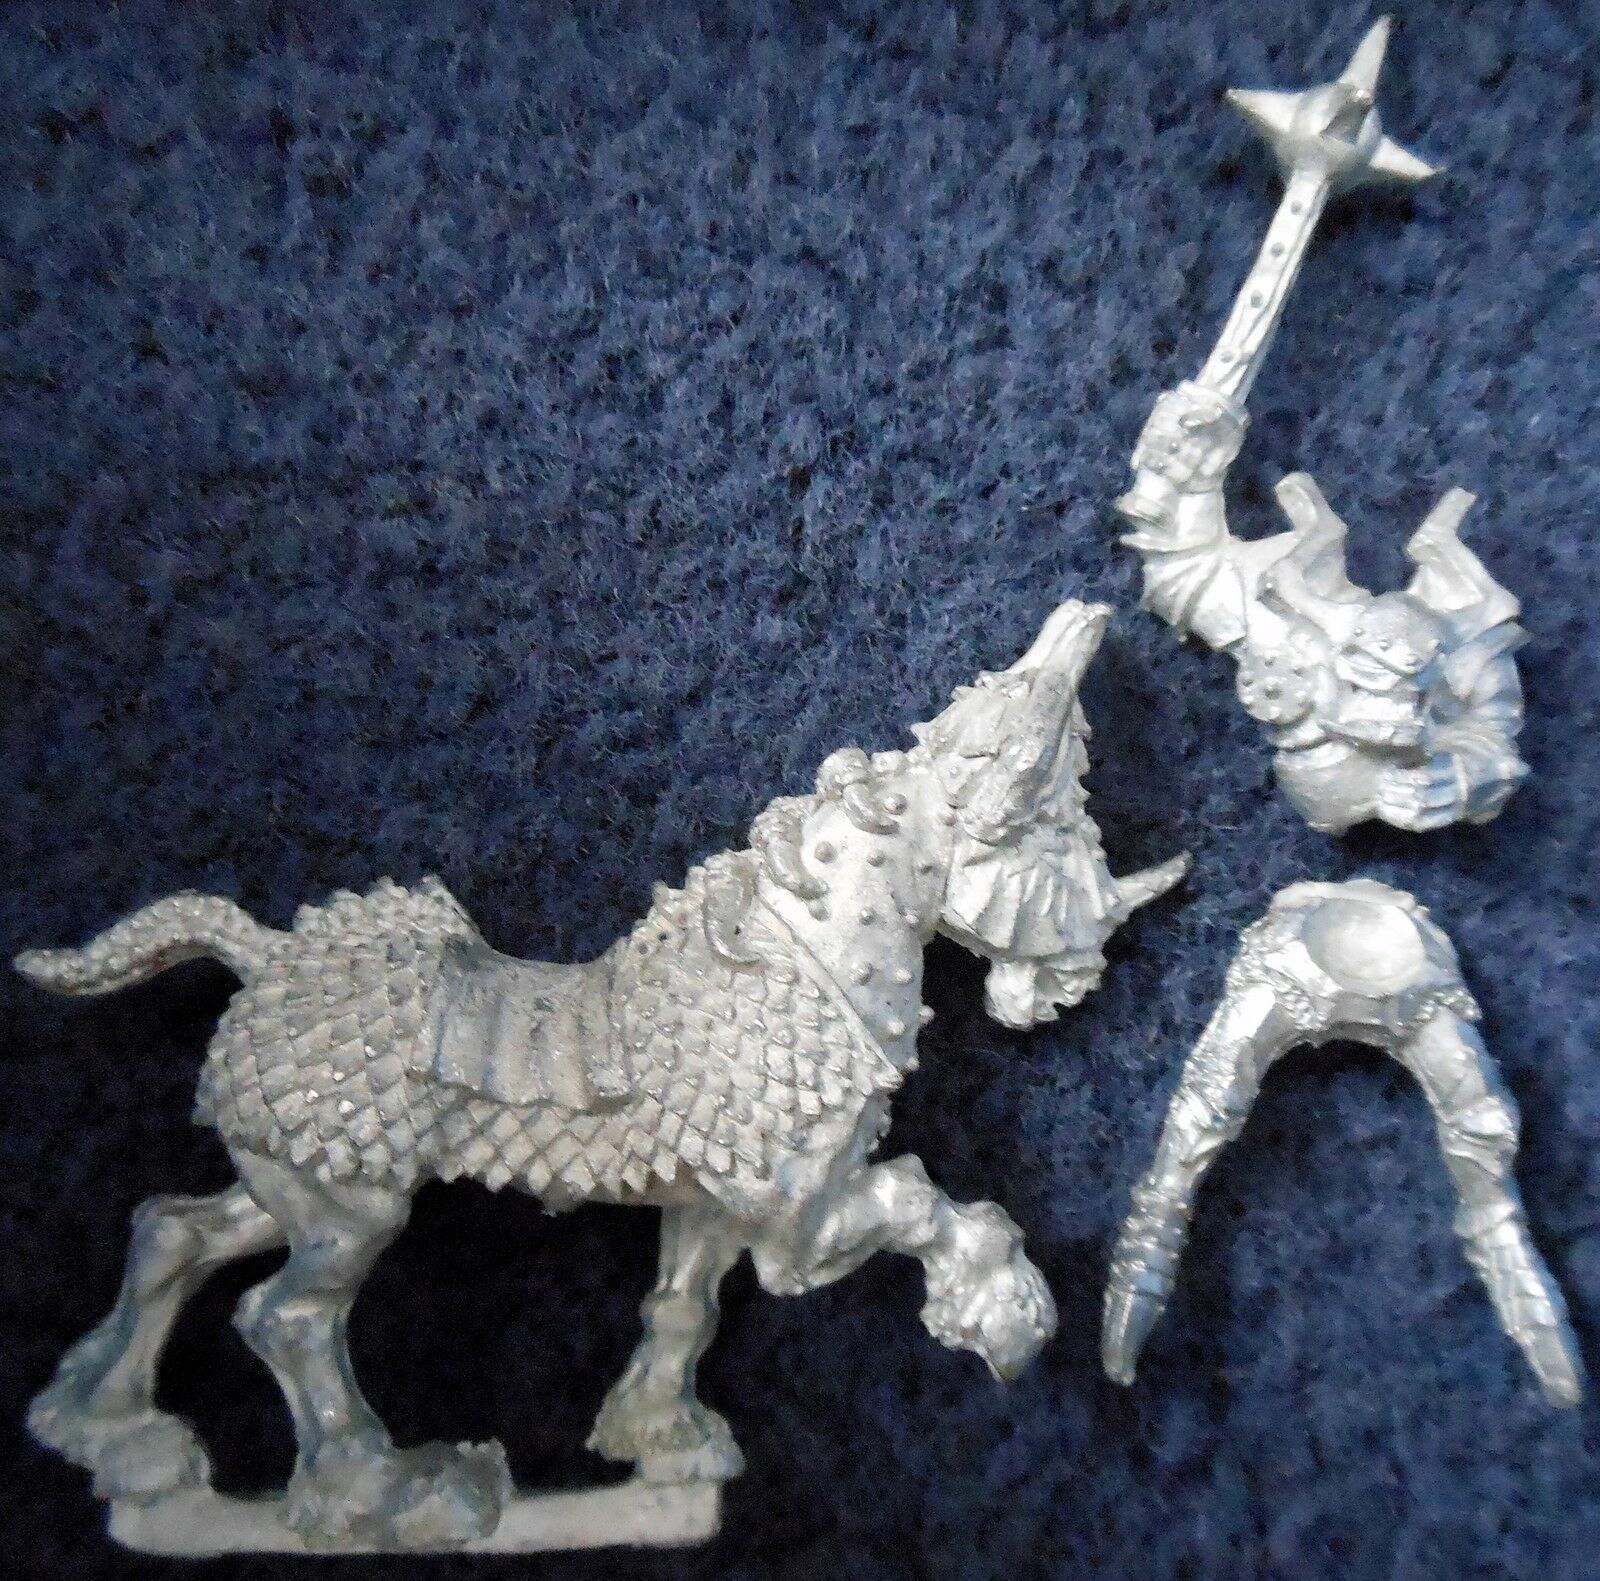 1988 Chaos Knight 0221 01 Games Workshop Warhammer Army Realm of Warrior Cavalry